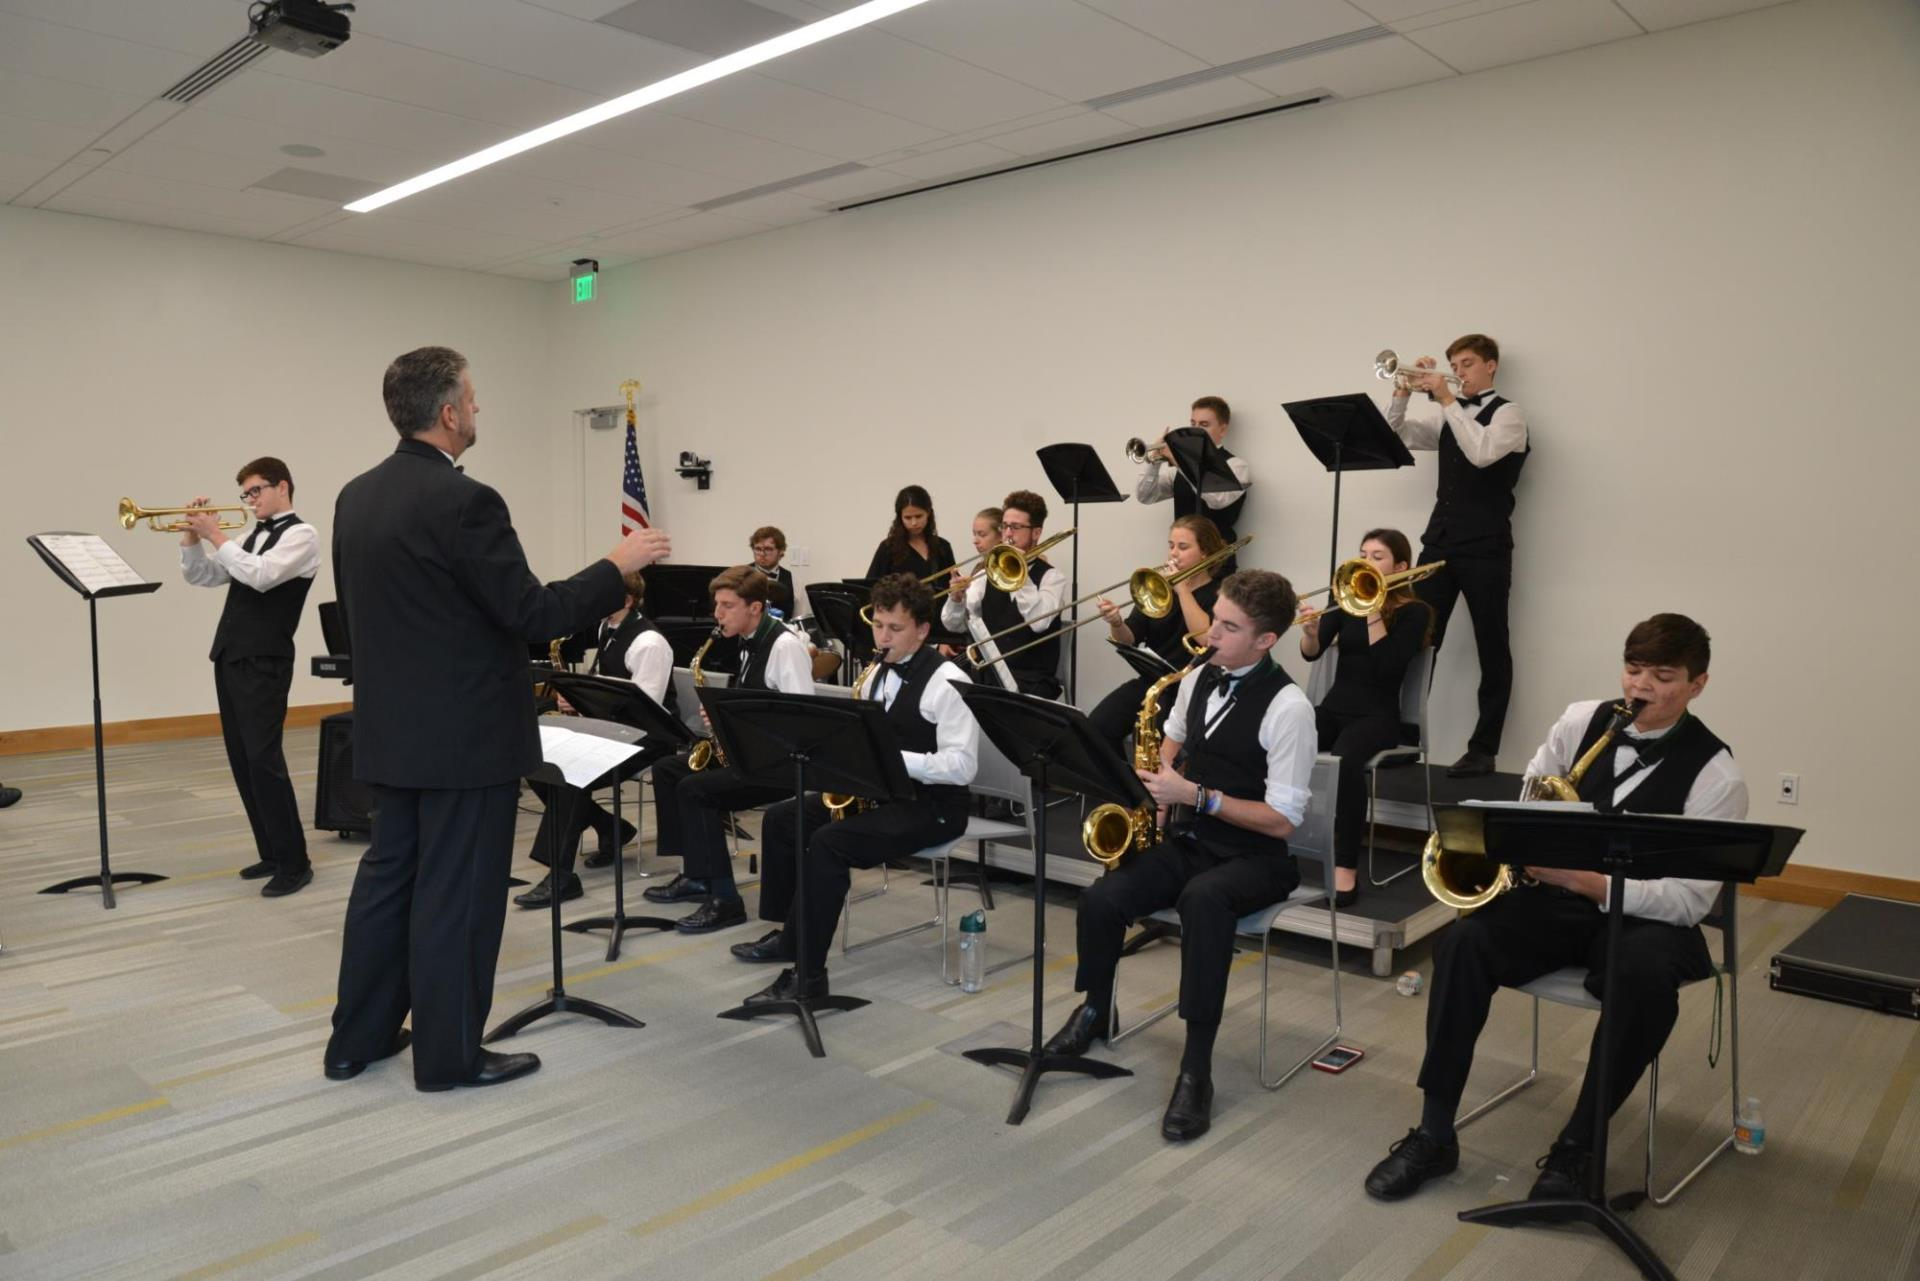 Venice High School student-musicians perform as community members explore the new William H. Jervey Jr. Venice Public library following its ribbon-cutting ceremony Dec. 15, 2018.